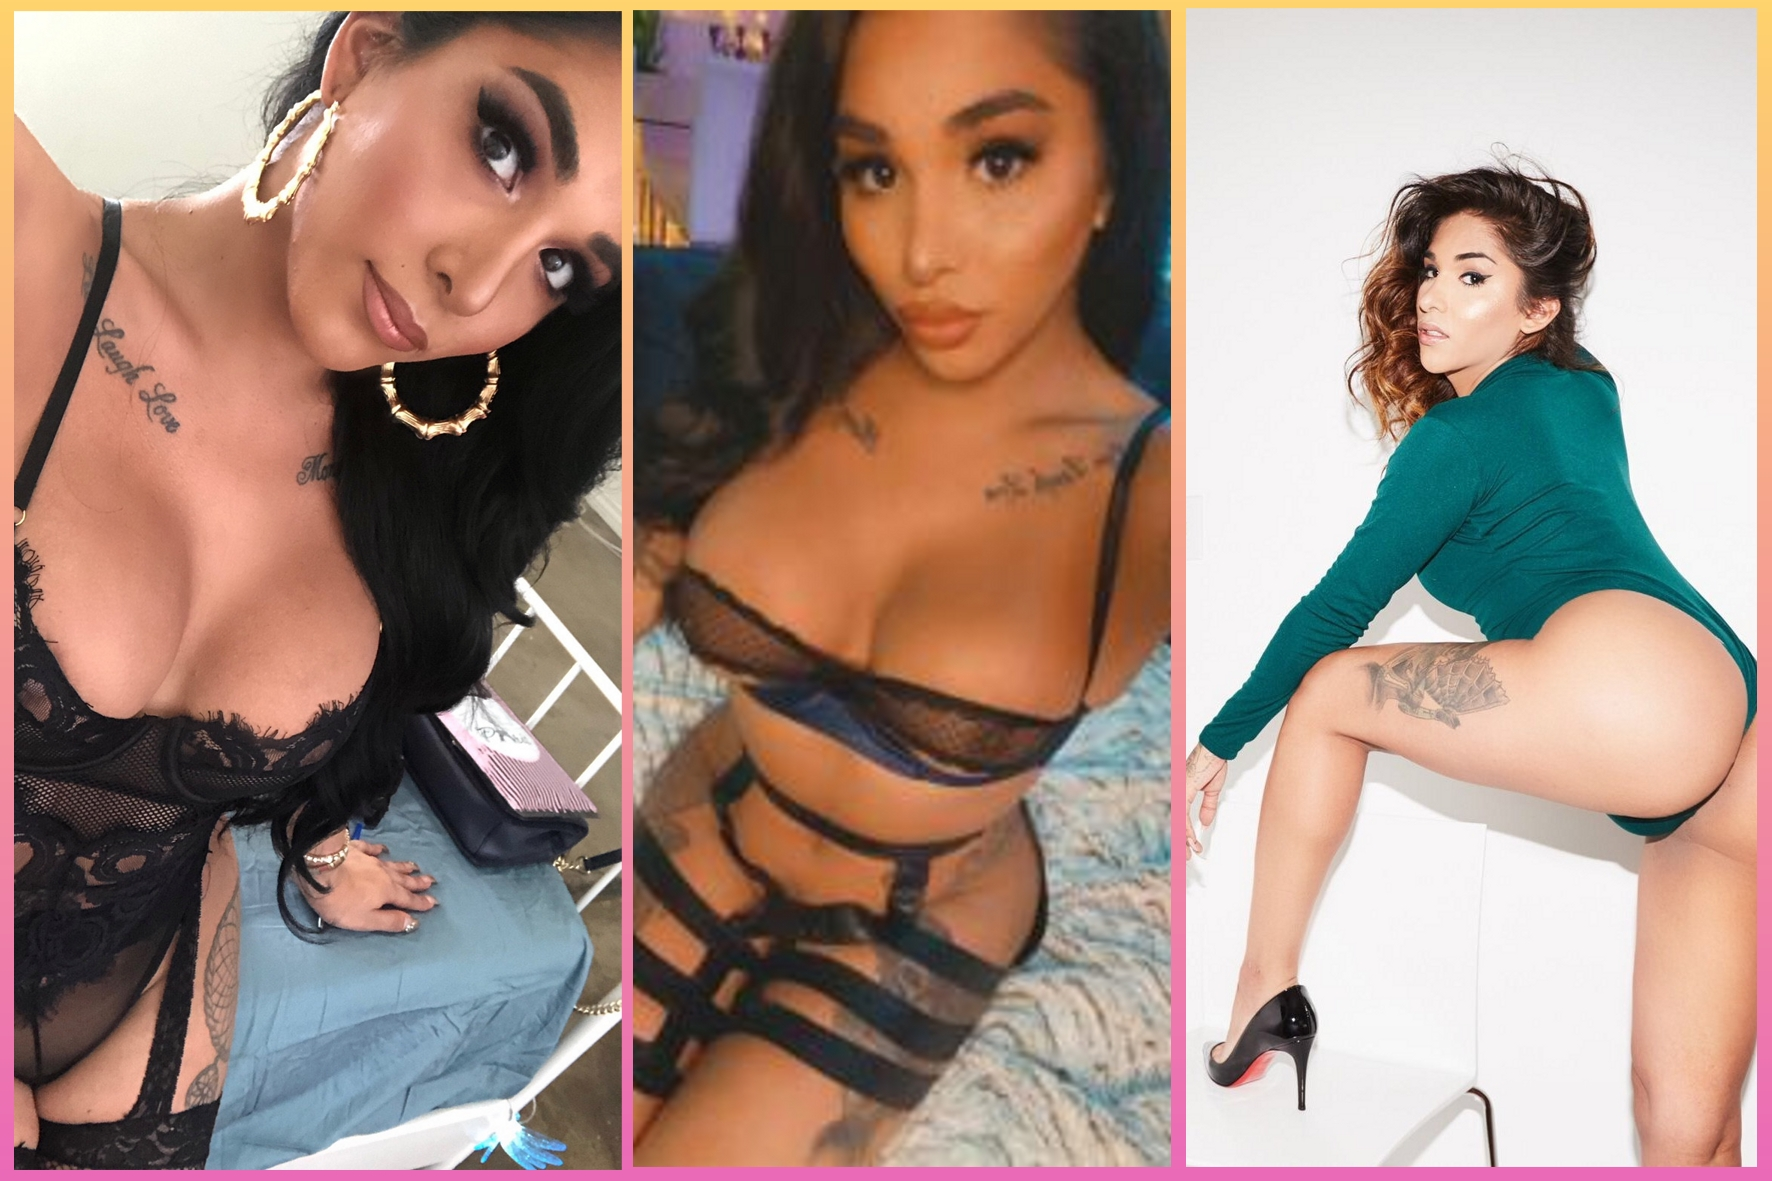 Shemale OnlyFans  💖 Jane Marie @janemarie_xo 💖 – 256 foto and 278 Videos SiteRip Leaked